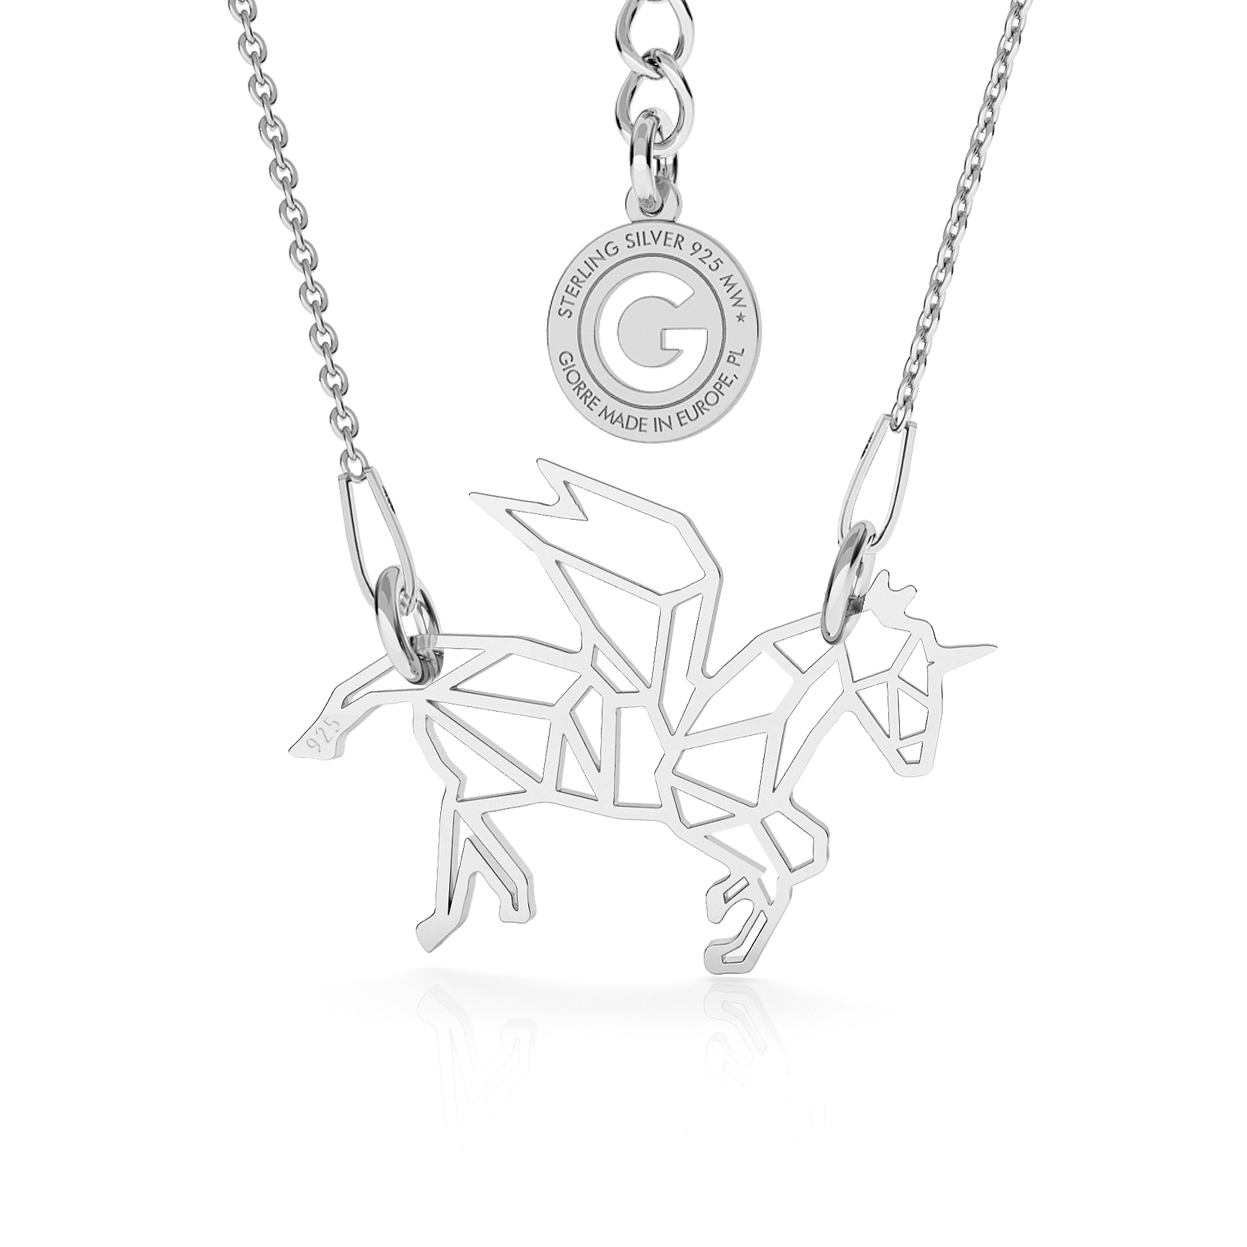 FRENCH BULLDOG NECKLACE SILVER 925